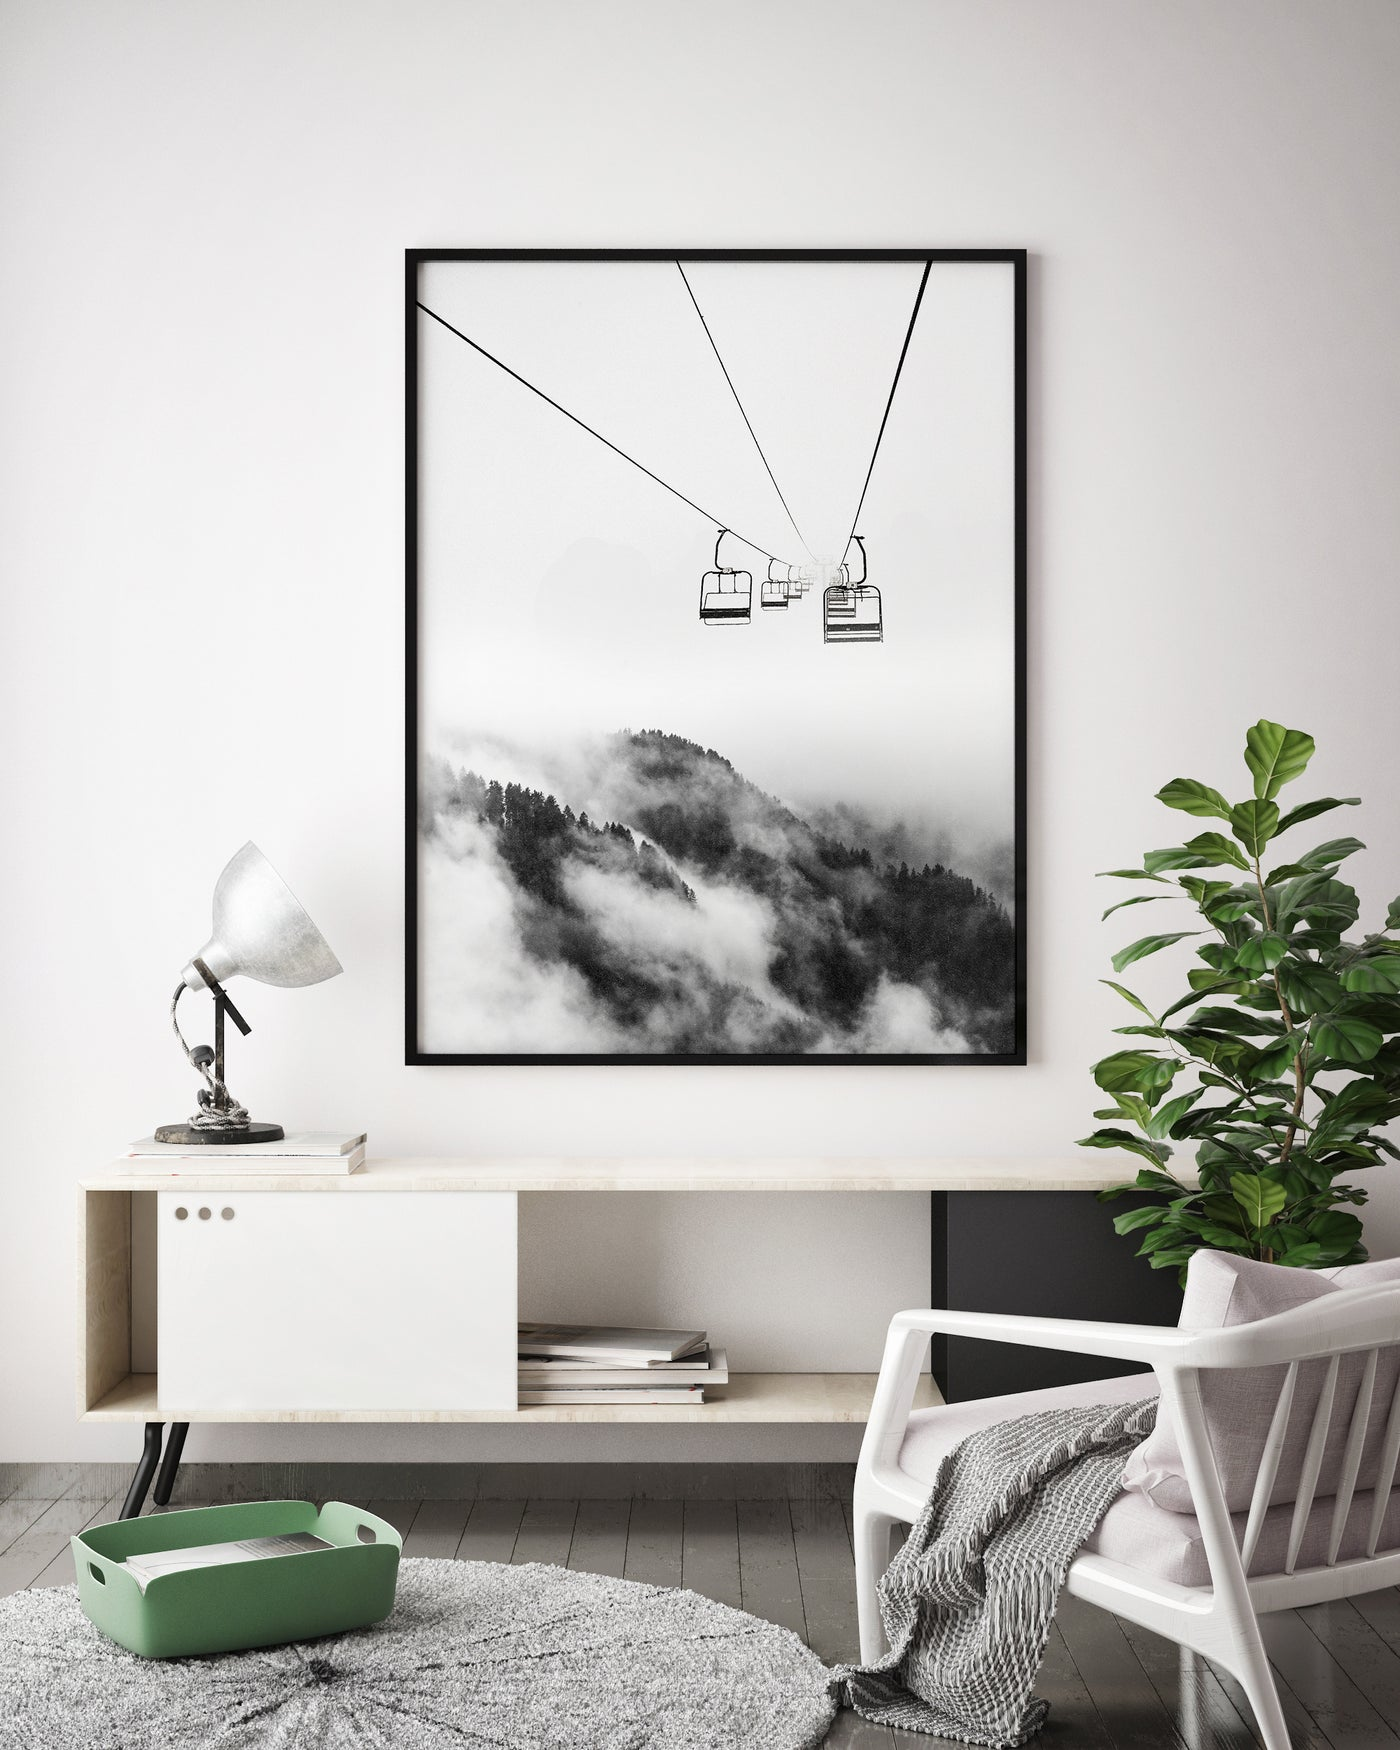 Ski Lift Snowy Mountain | Black & White Landscape Photography - Pretty in Print Art